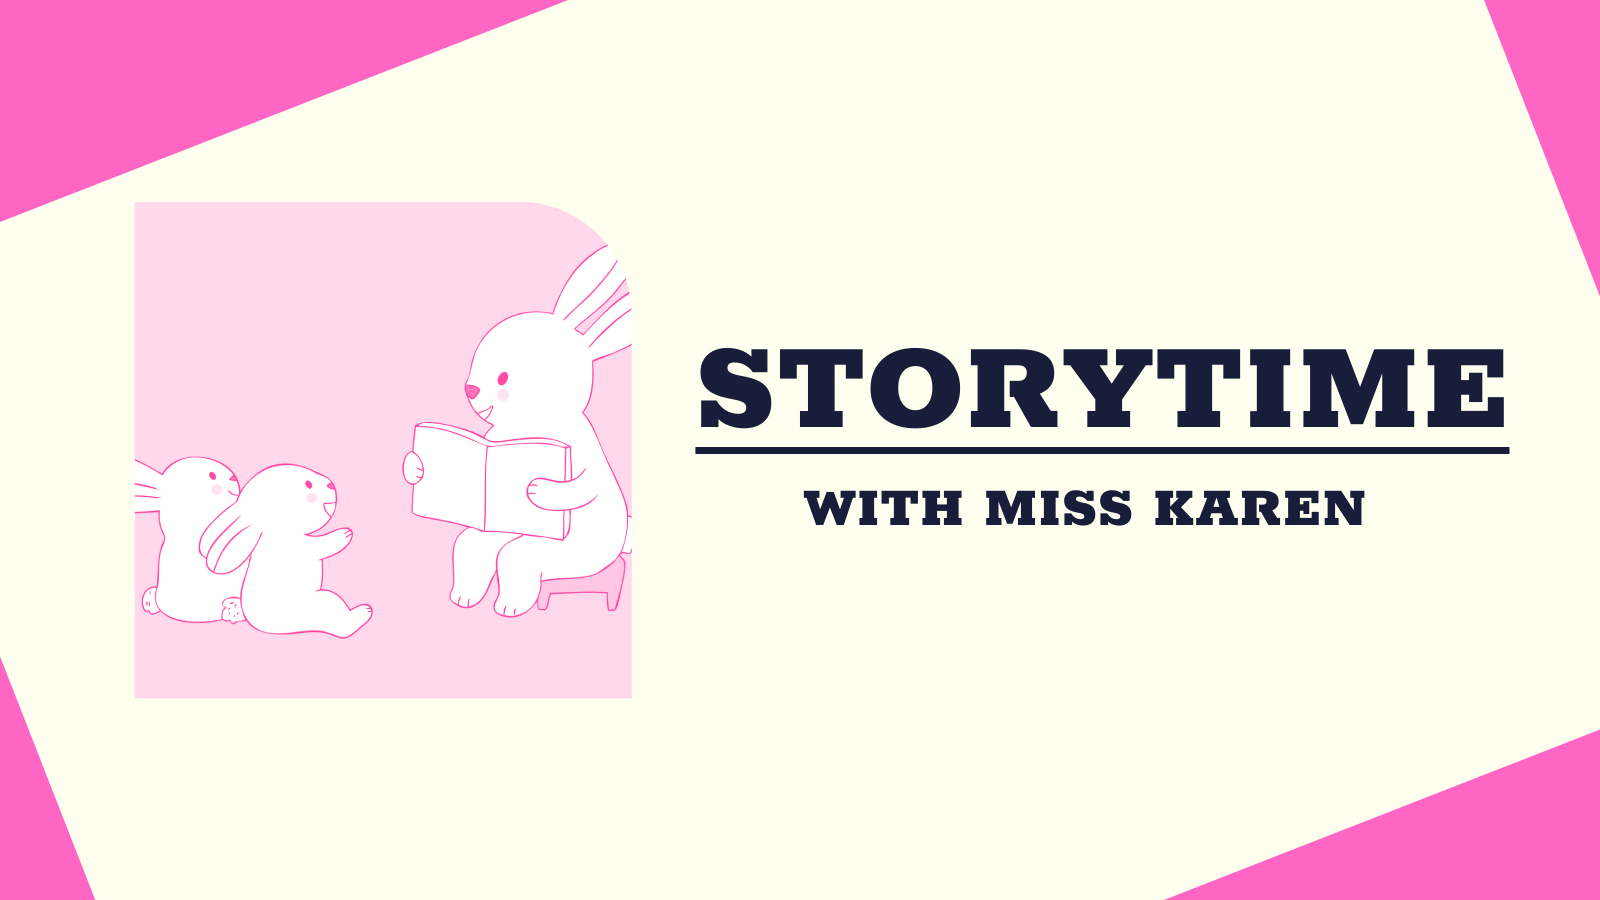 Storytime with Miss Karen